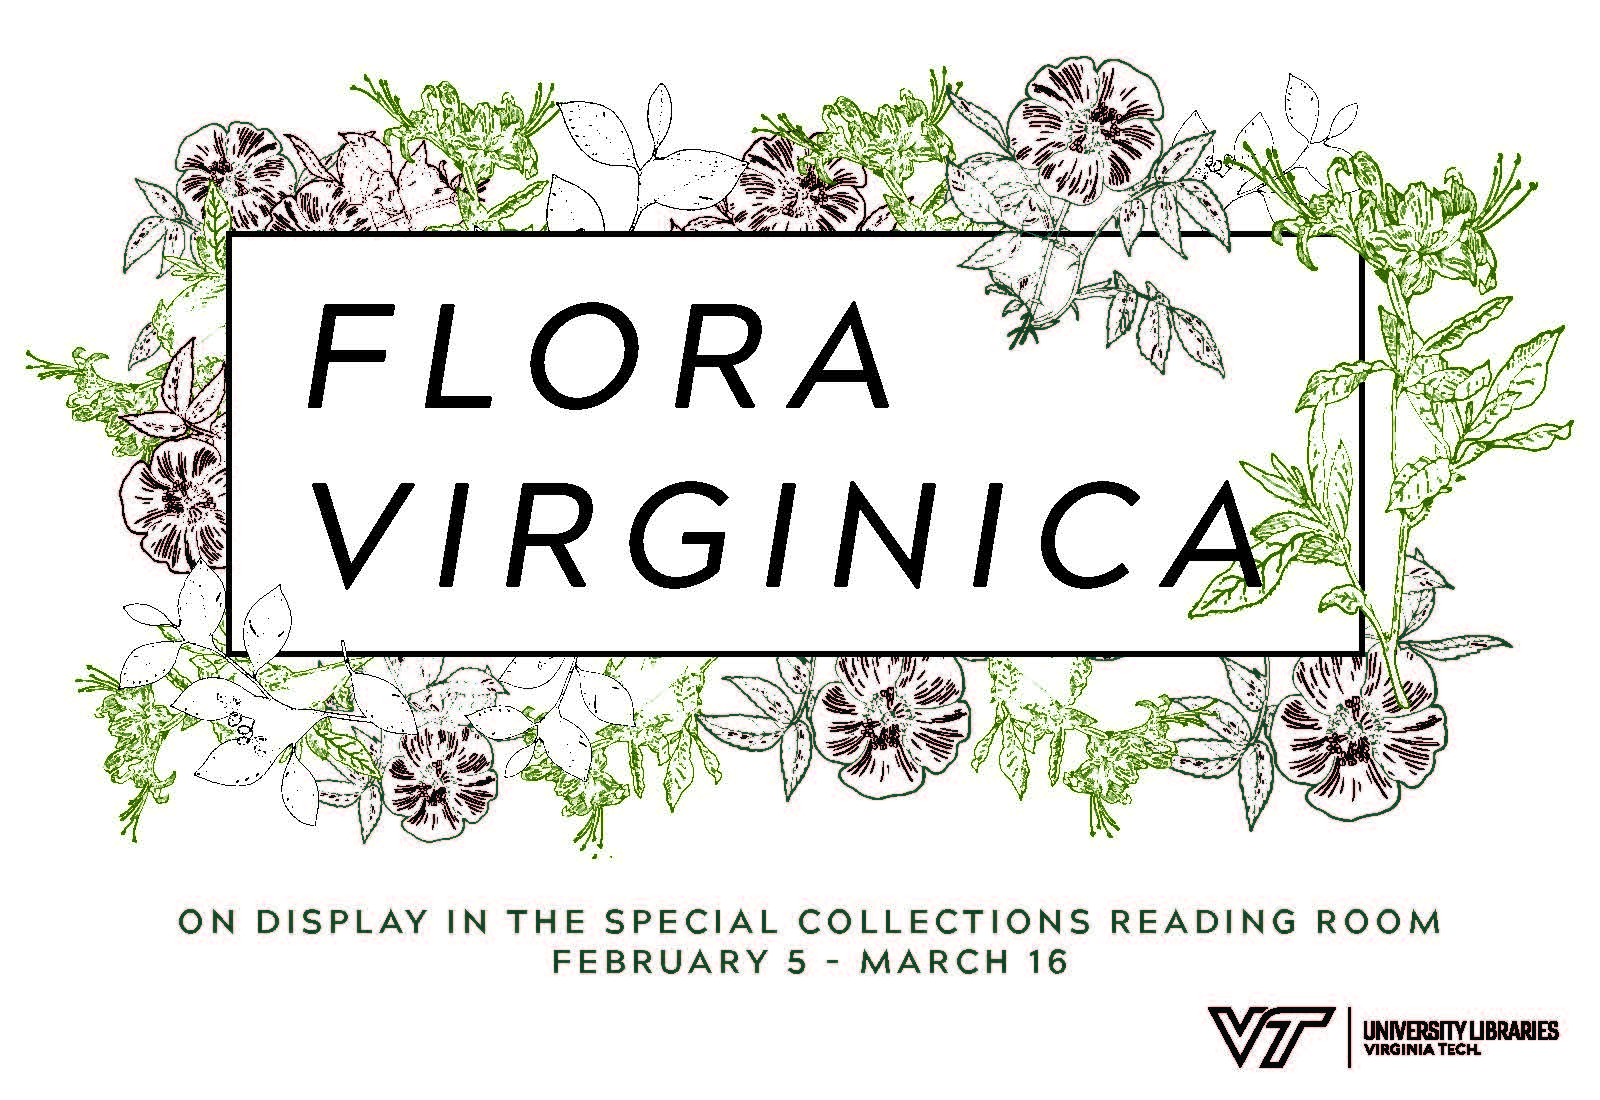 "An advertising graphic that reads: ""Flora Virginica"" within a border of dogwood blossoms. Below the graphic is the text ""On display in the Special Collections Reading Room February 5 - March 16."" In the lower right corner is the Virginia Tech University Libraries logo."